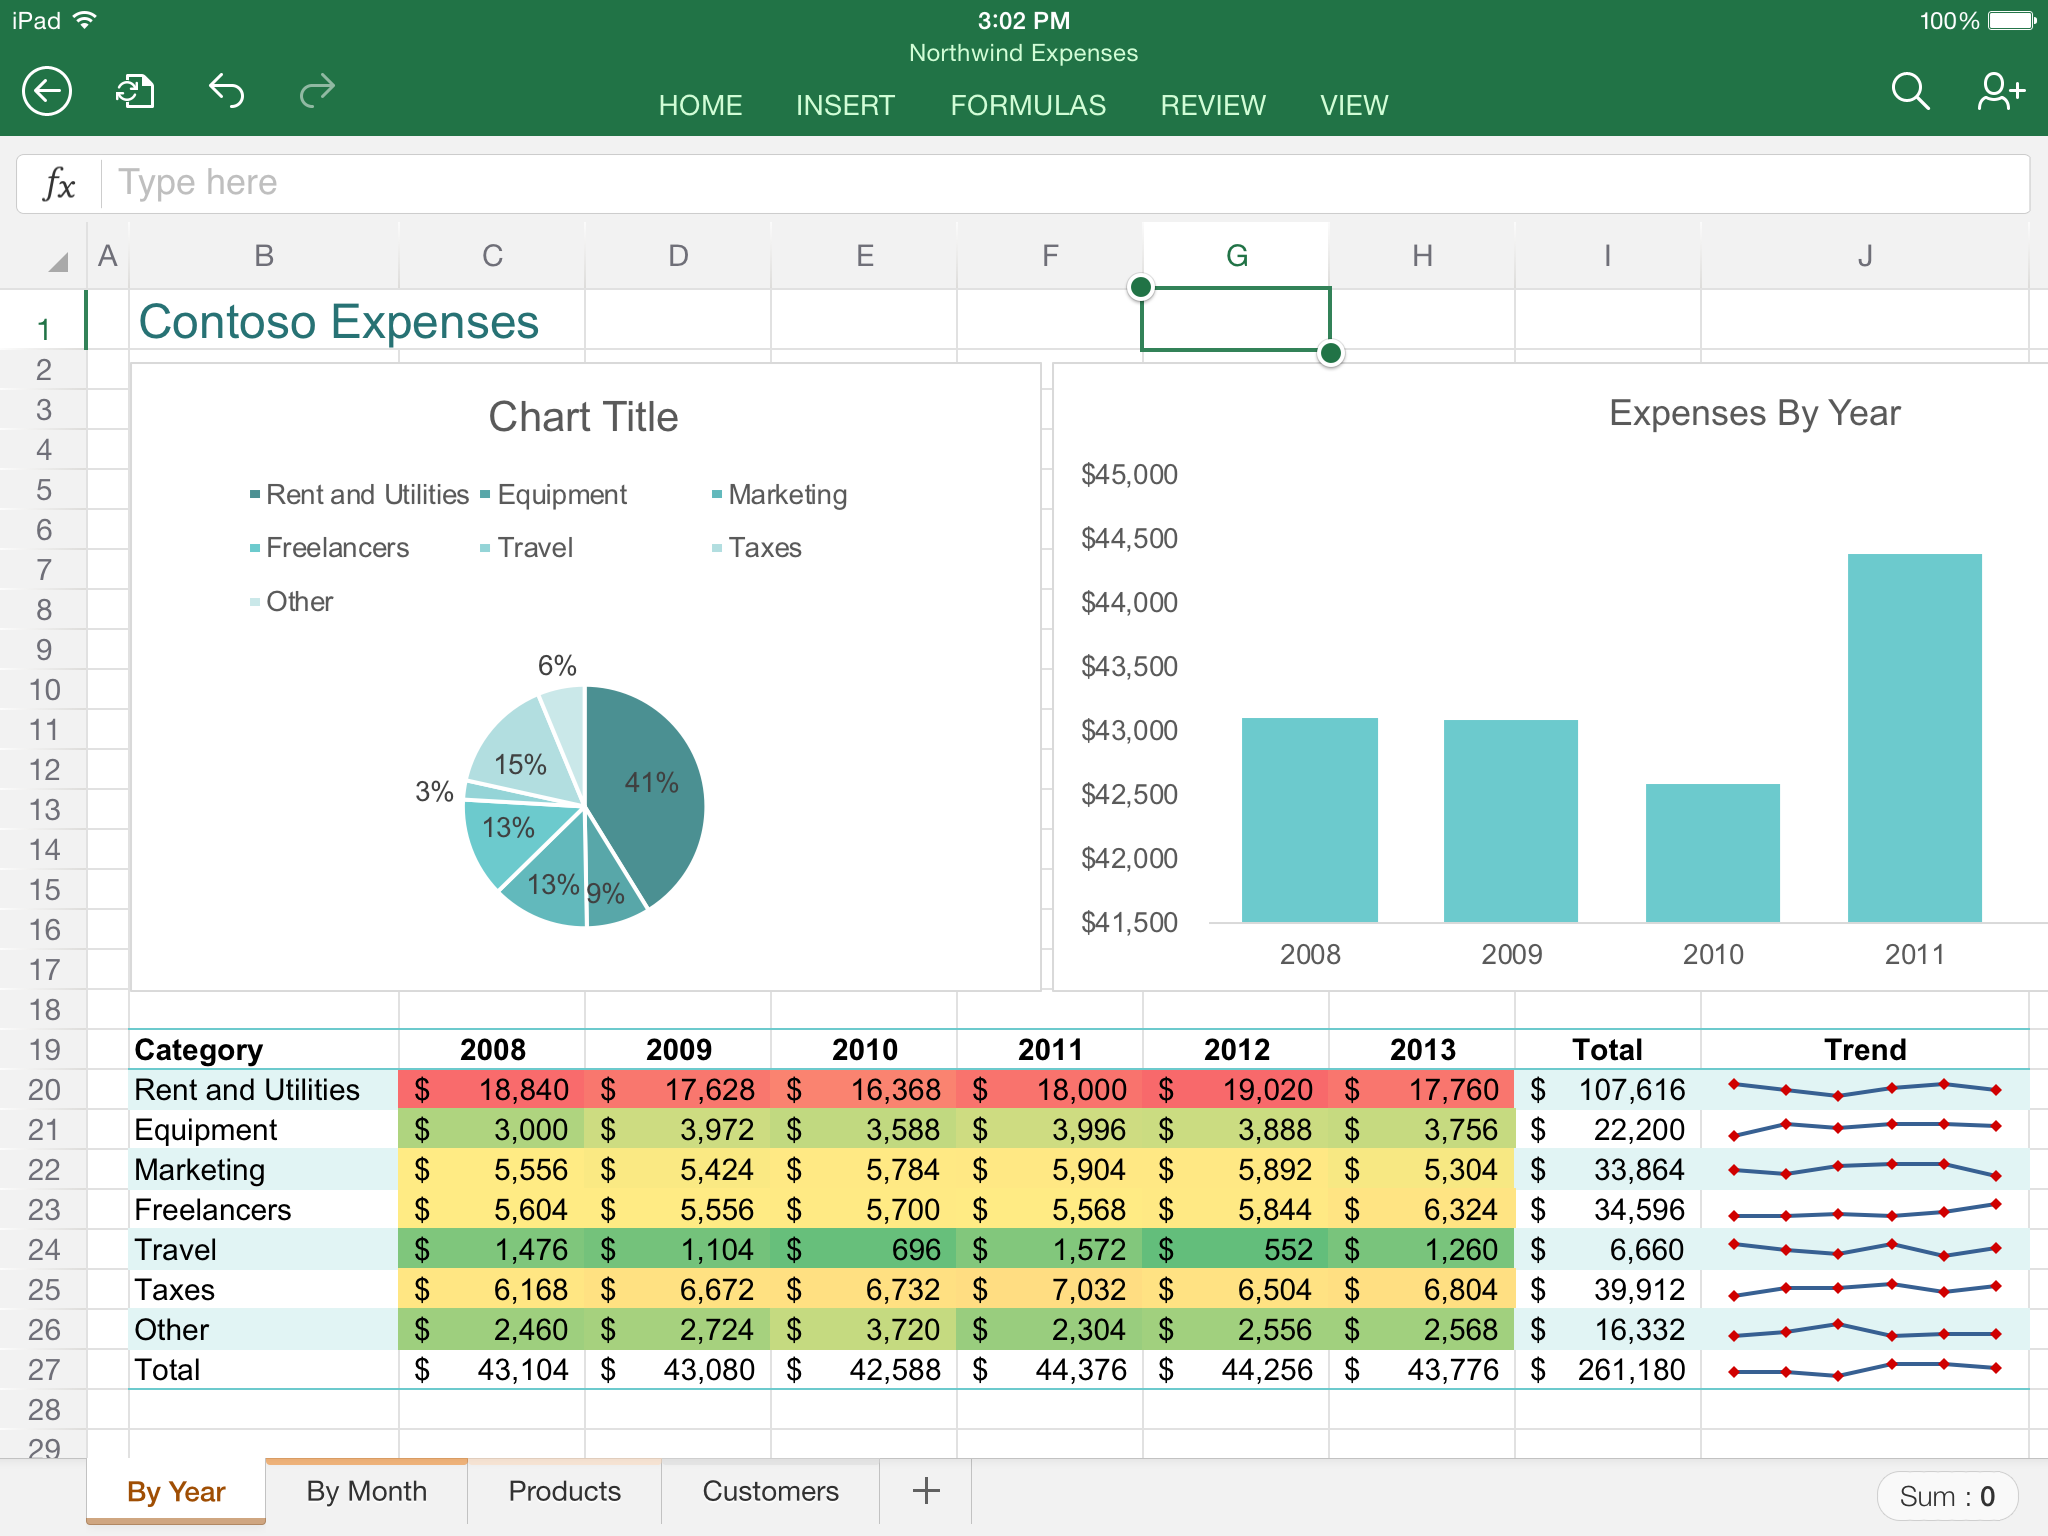 Ediblewildsus  Terrific App Highlight Excel  Mobile Digital Now With Lovable Excel In Action With Delightful Logical Operators In Excel Also Make Labels In Excel In Addition Excel Using Multiple If Statements And How To Create Data Table In Excel As Well As I Want To Excel Additionally Loan Amortization In Excel From Youstonybrookedu With Ediblewildsus  Lovable App Highlight Excel  Mobile Digital Now With Delightful Excel In Action And Terrific Logical Operators In Excel Also Make Labels In Excel In Addition Excel Using Multiple If Statements From Youstonybrookedu